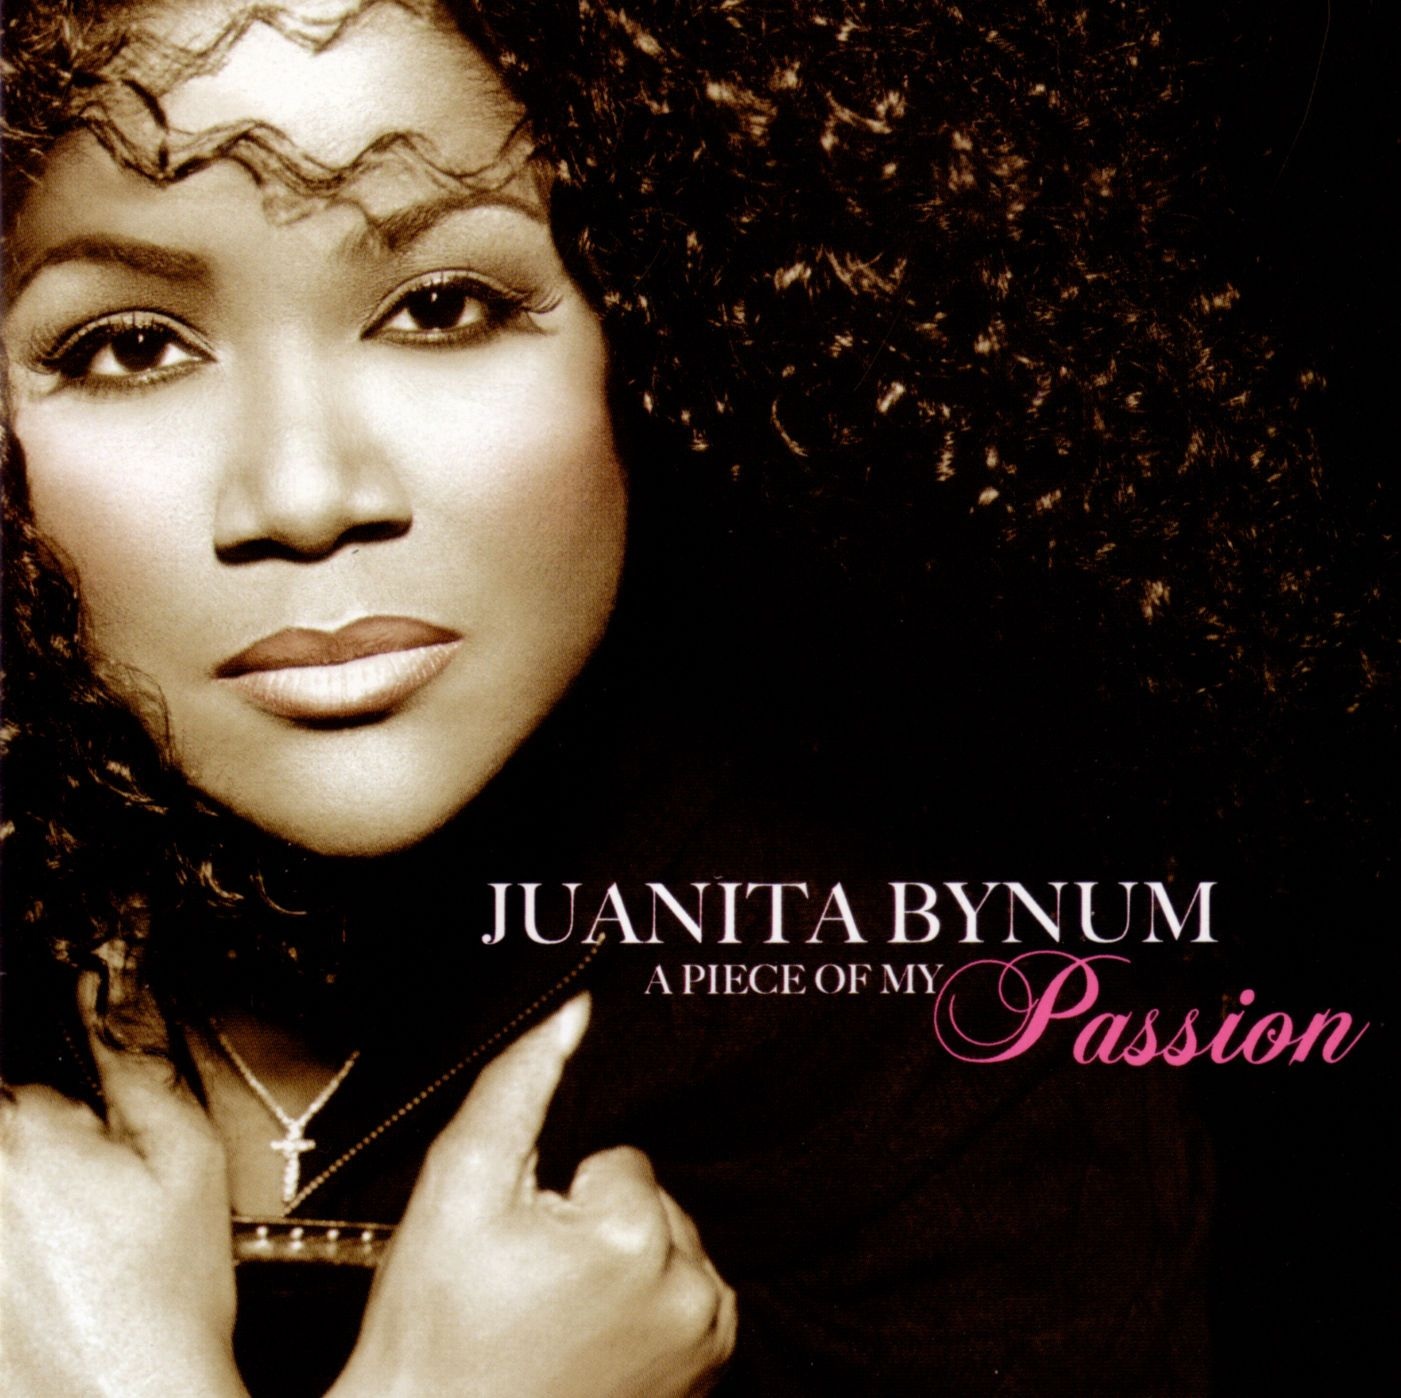 A Piece Of My Passion By Juanita Bynum On Itunes Praise And Worship Songs Praise Music Gospel Music